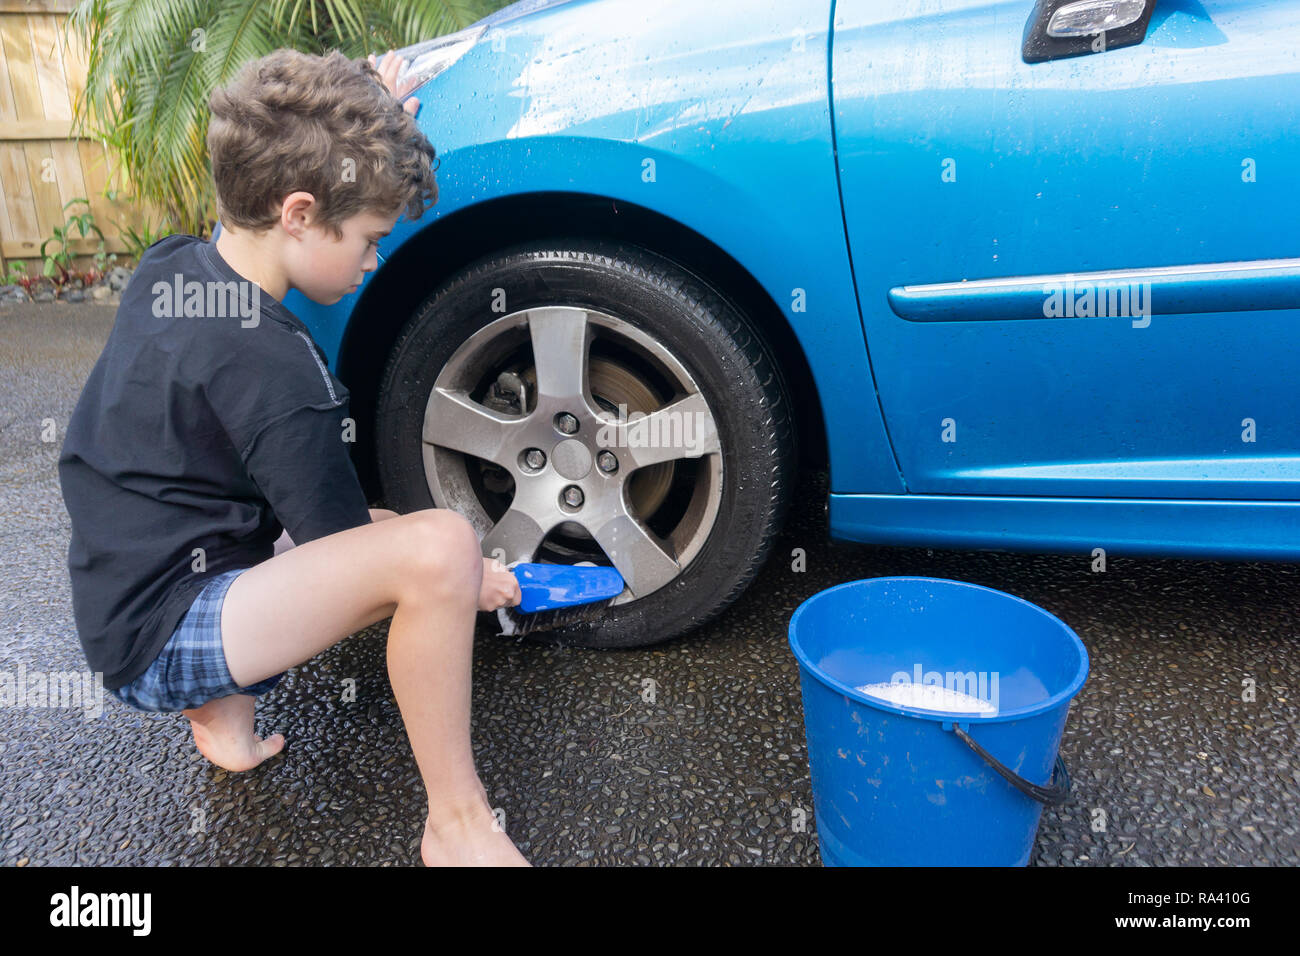 Boy earning pocket money cleaning blue compact car with hose, bucket of water and car brush cleaning wheels. - Stock Image